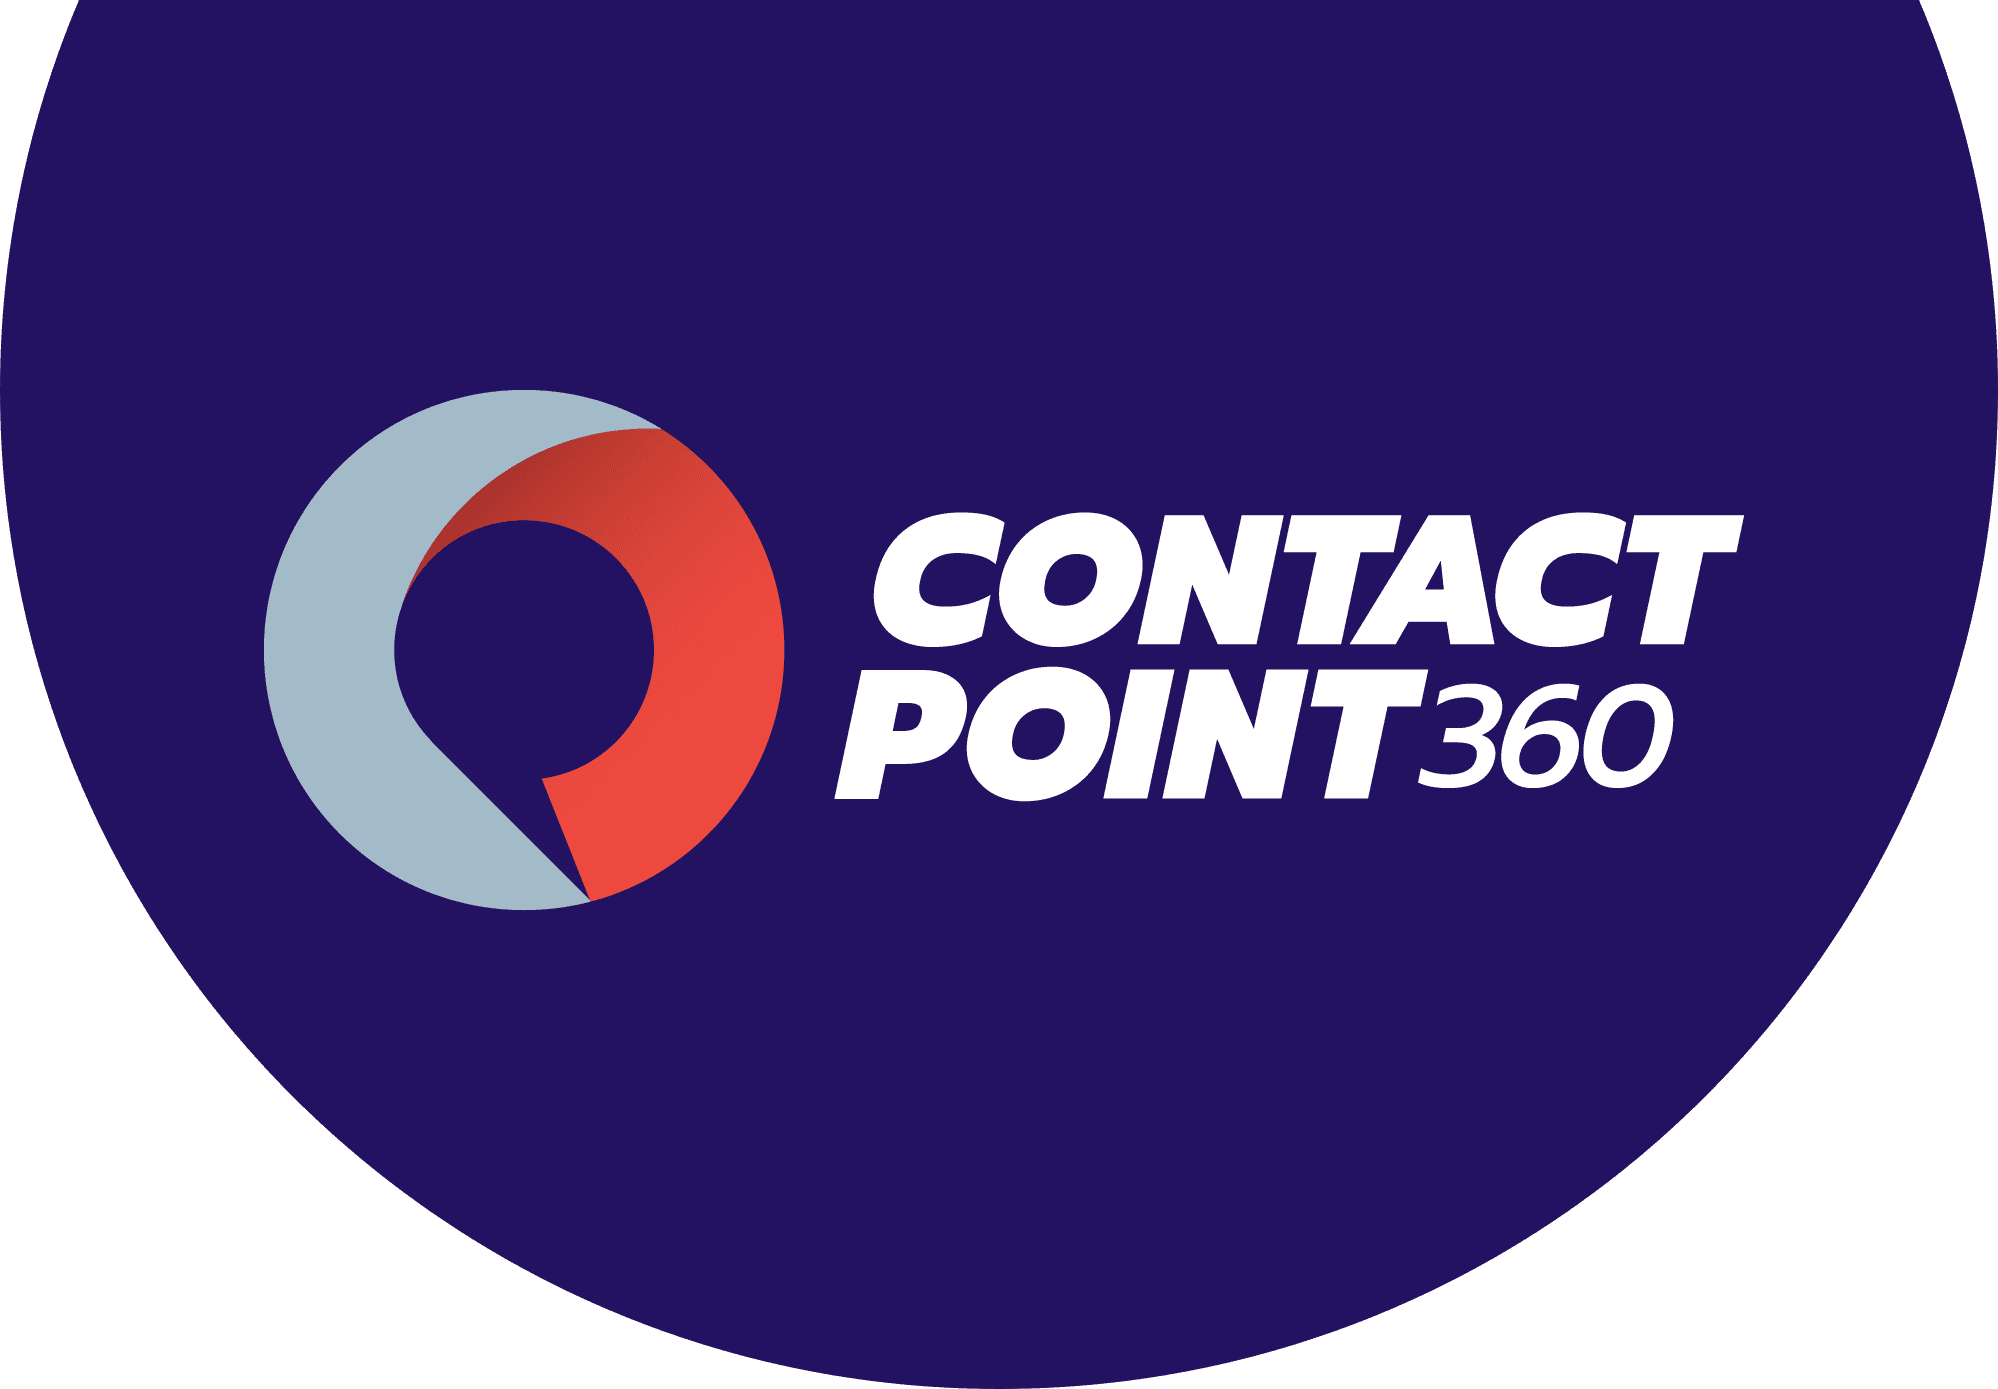 Contact Point 360